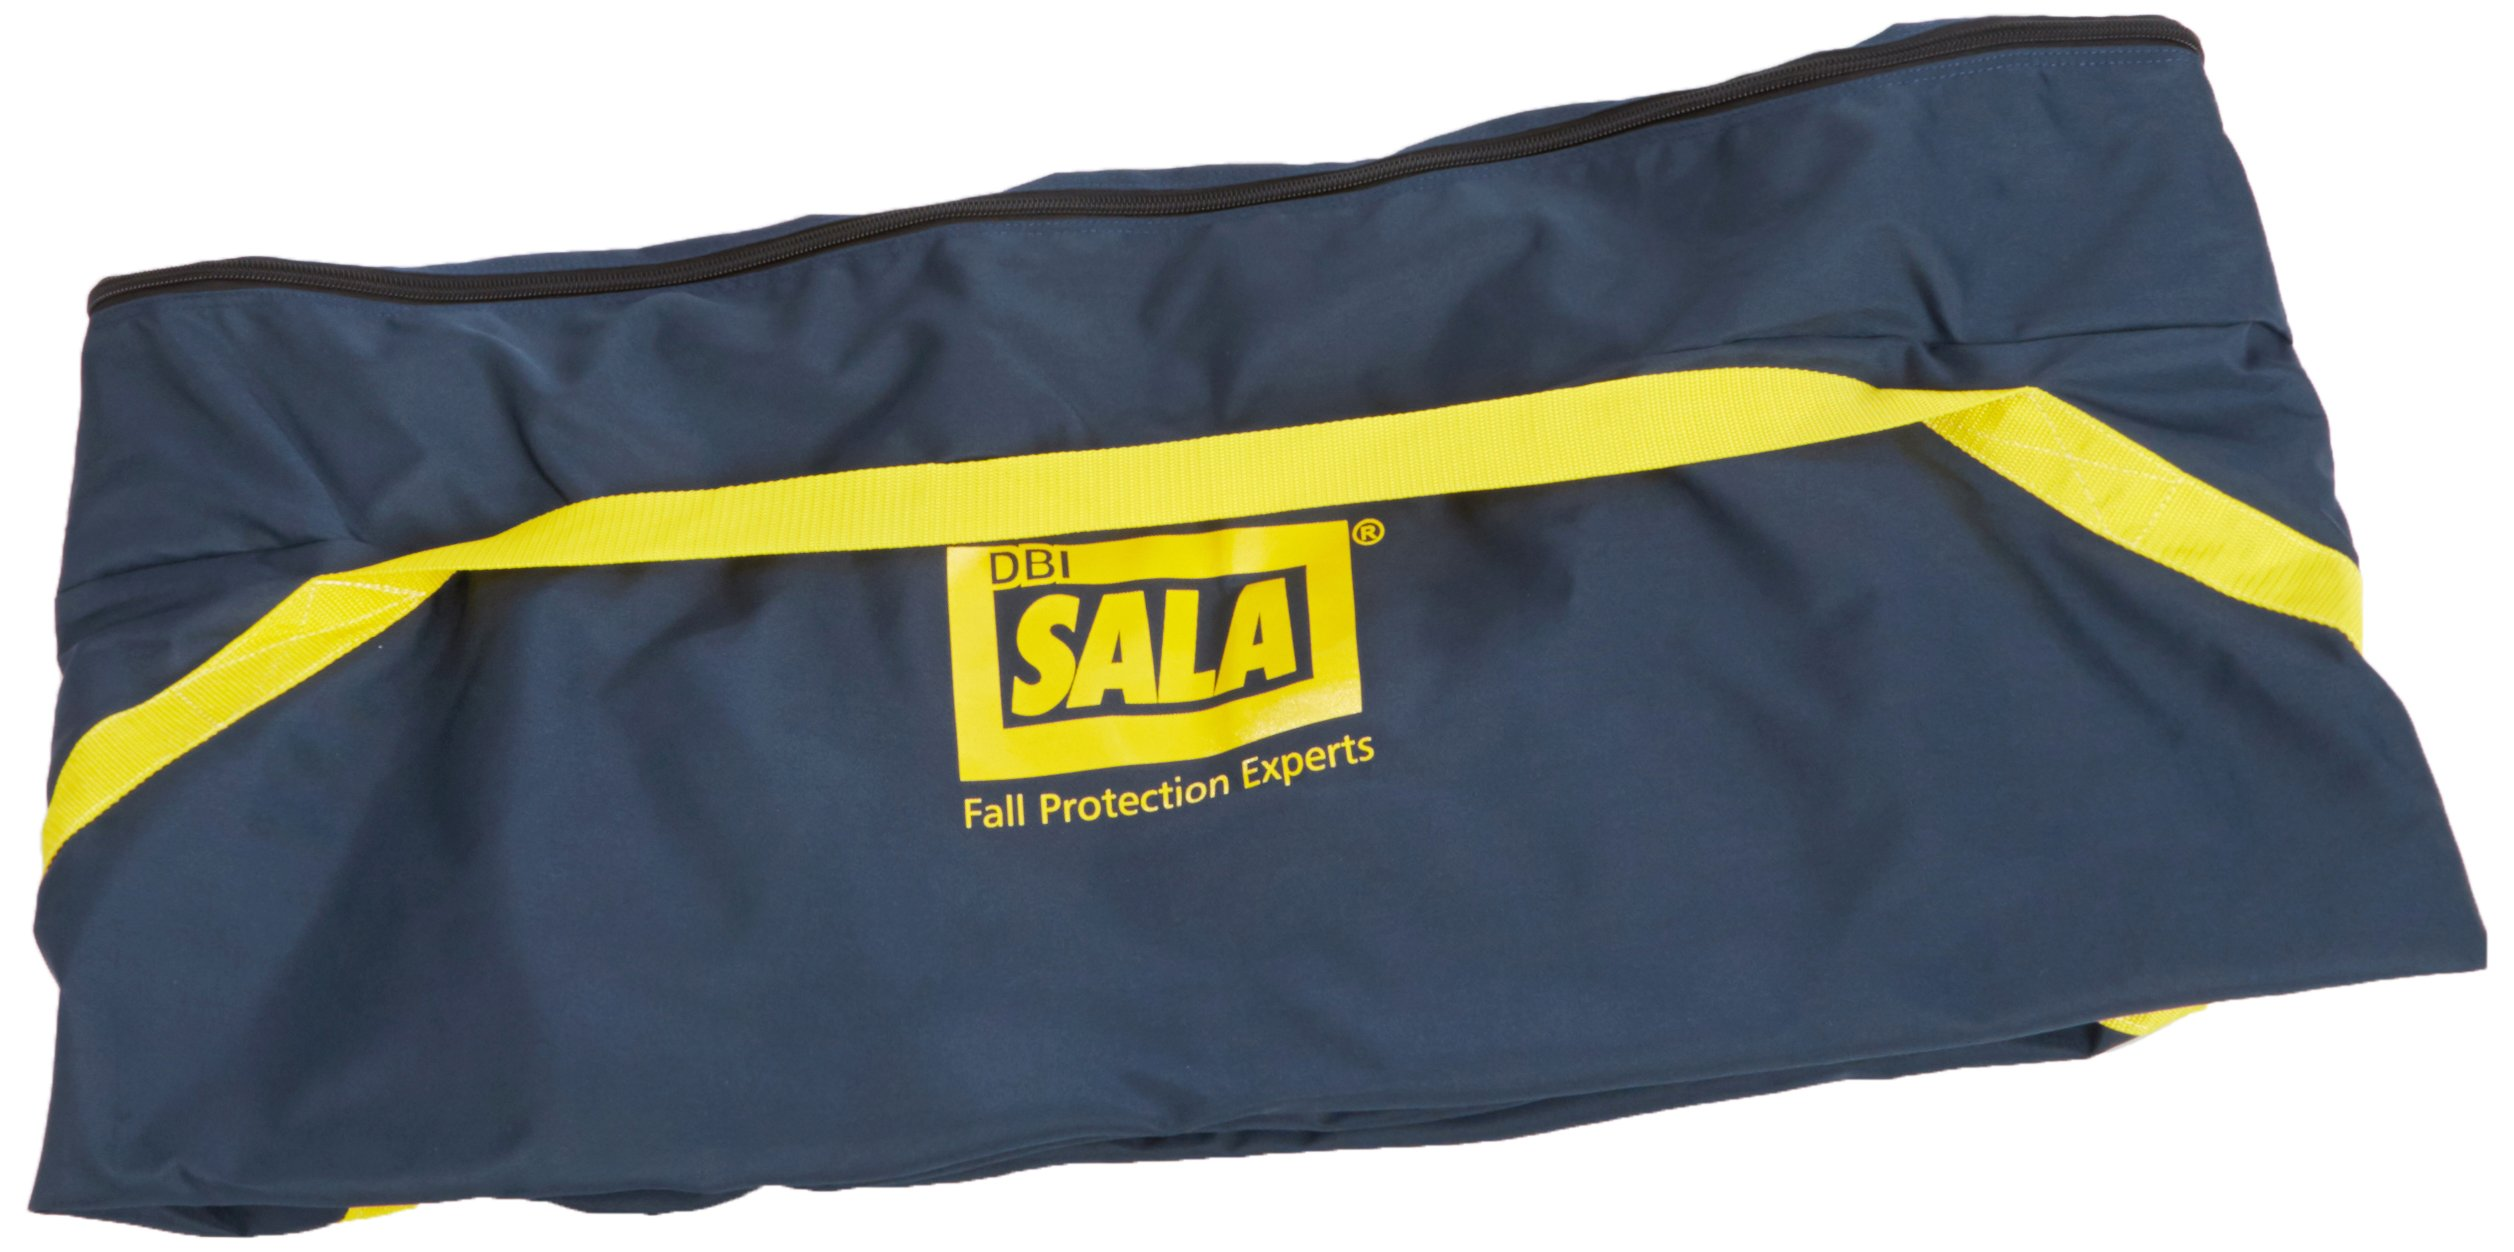 3M DBI-SALA,Advanced 9503095 Carrying Bag, with Zipper and Web Handles, For Advanced 9 ' Aluminum Tripod, Navy by 3M Fall Protection Business (Image #1)